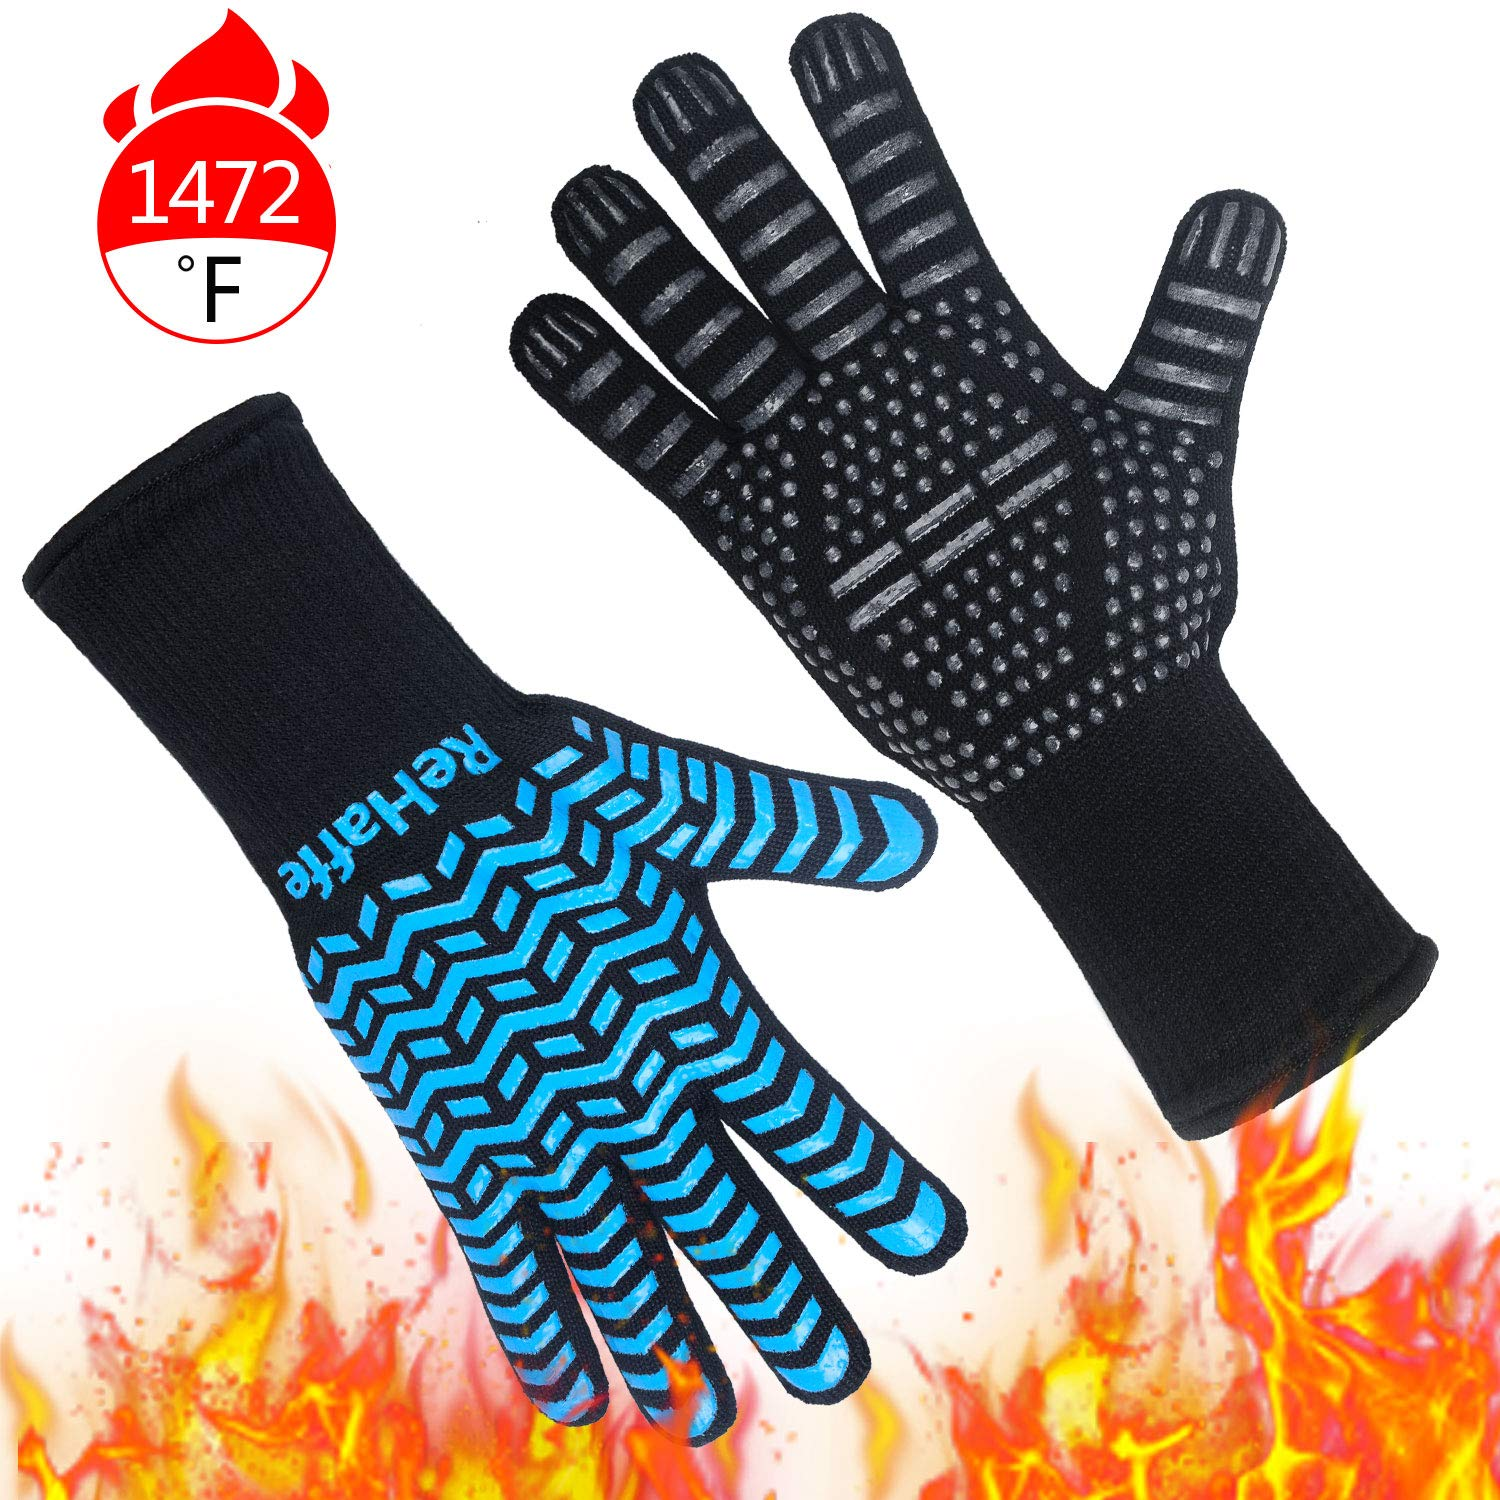 ReHaffe Grill Gloves Heat Resistant 1472℉, Food Grade Kitchen Cooking Gloves, Non-Slip BBQ Grilling Gloves, Smorker Gloves for Barbecue,Grilling,Cooking, Baking, Cutting